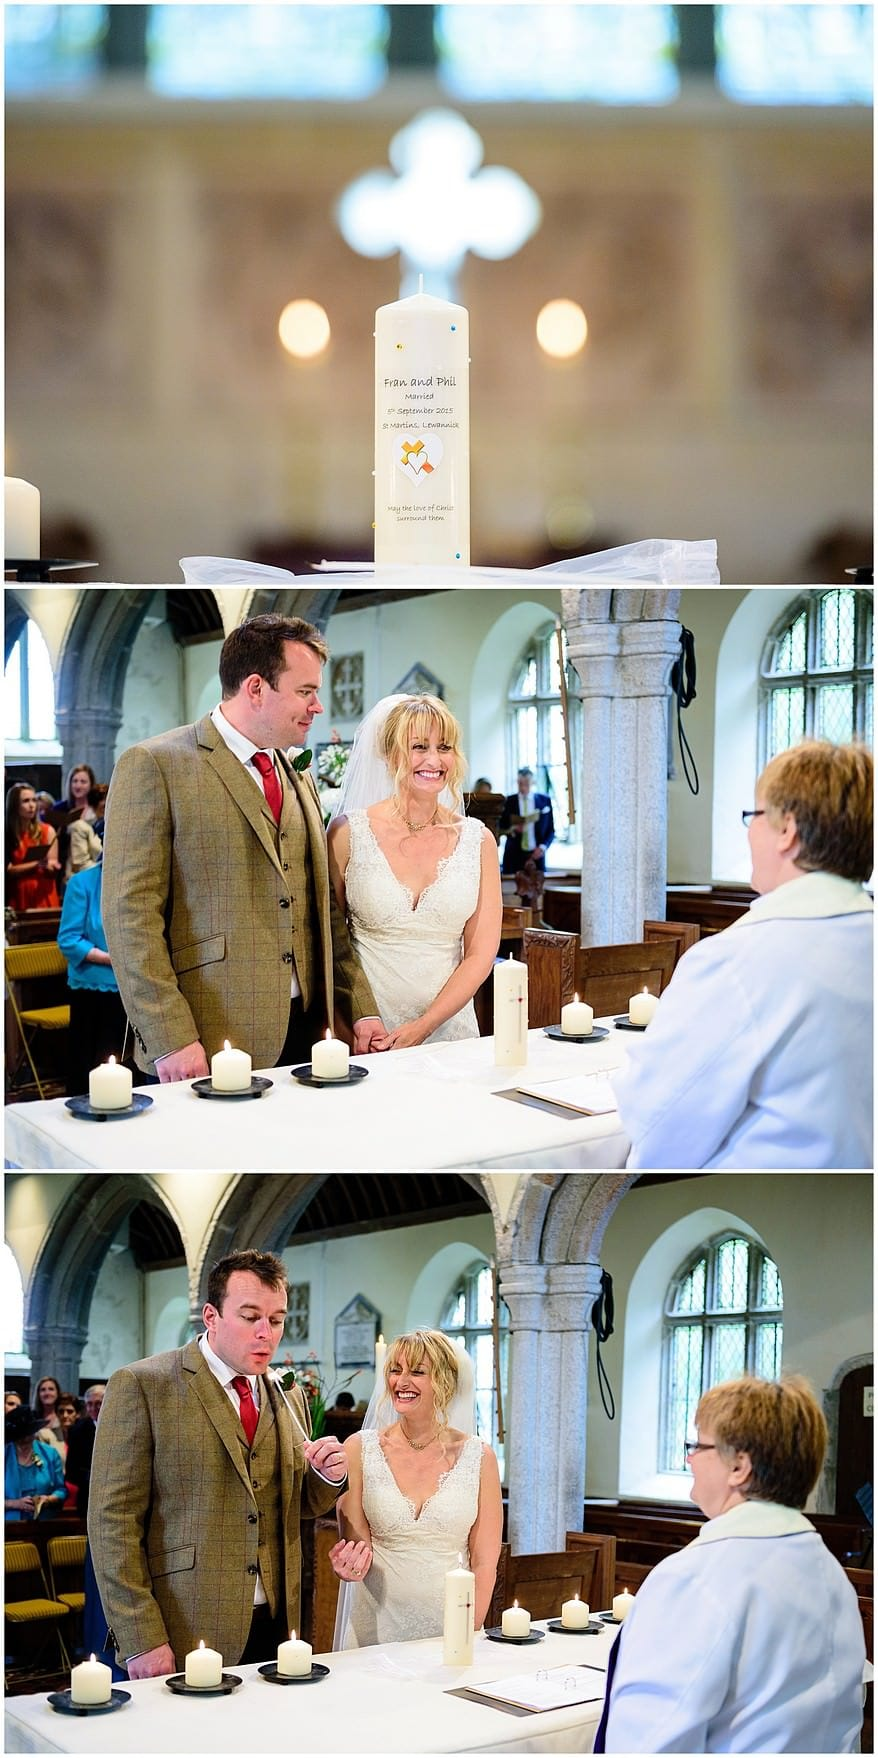 Documentary wedding photography at Saint Martin's church in Lewannick